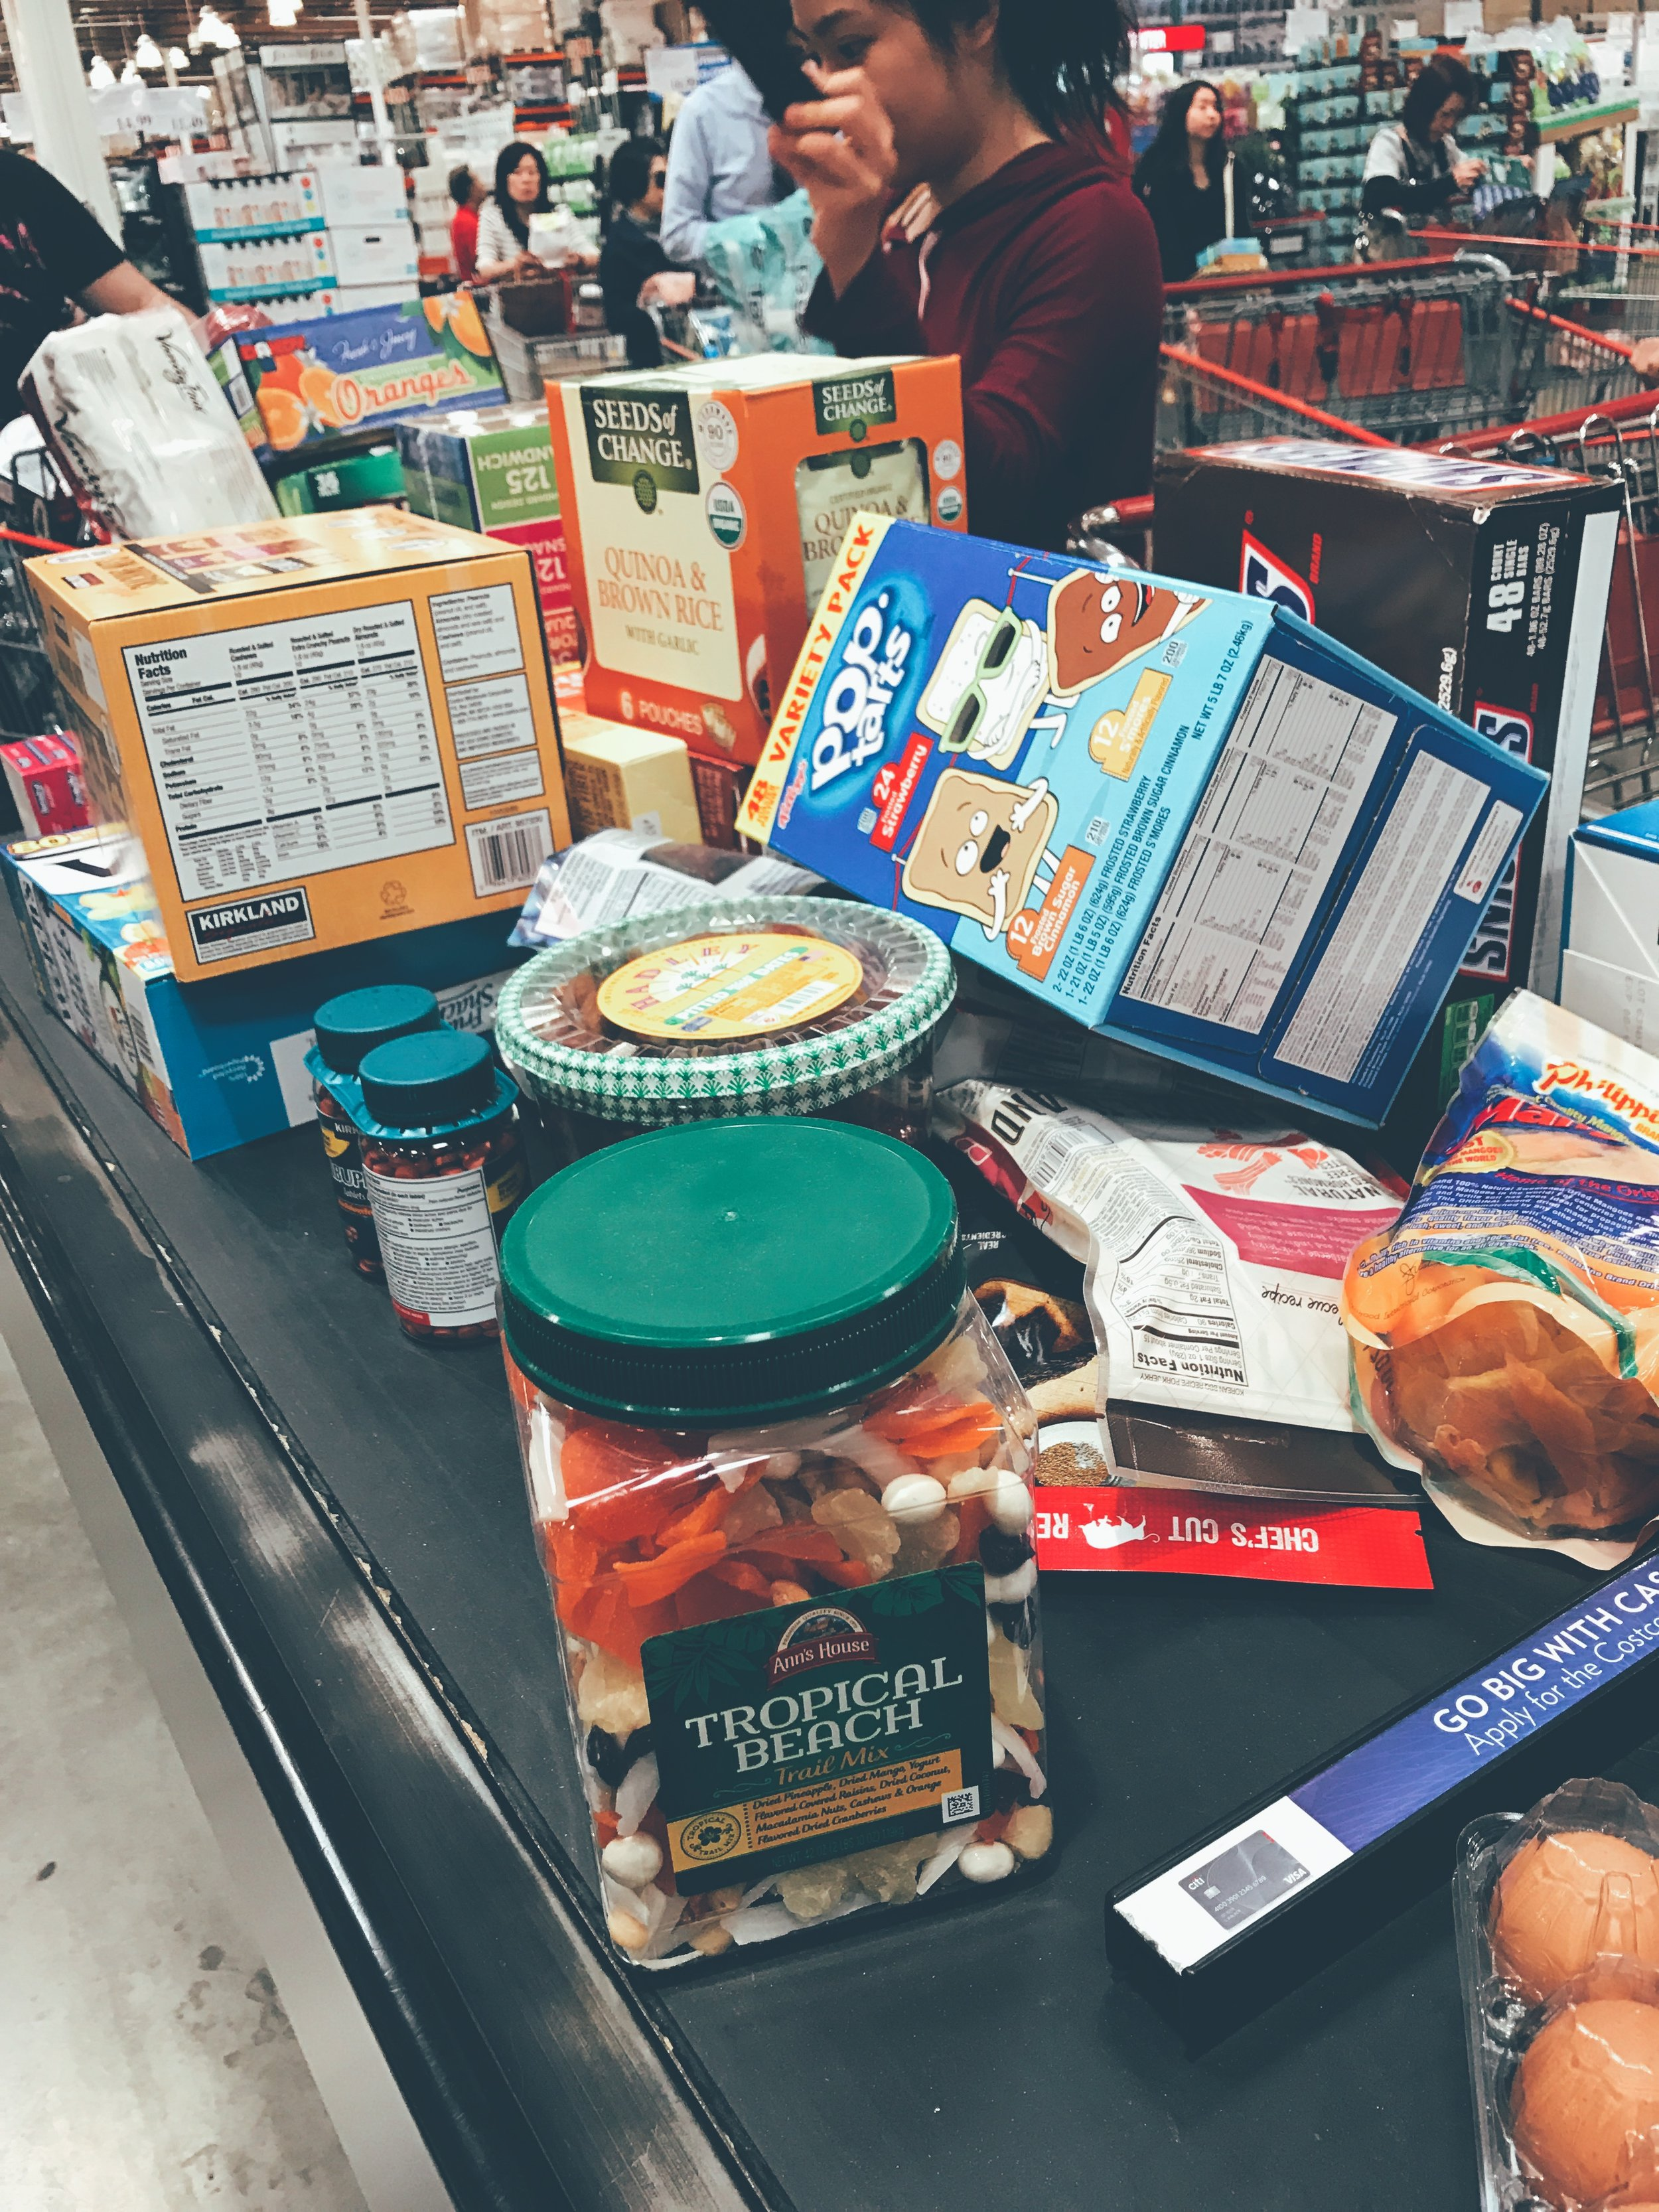 Magical things happen at Costco